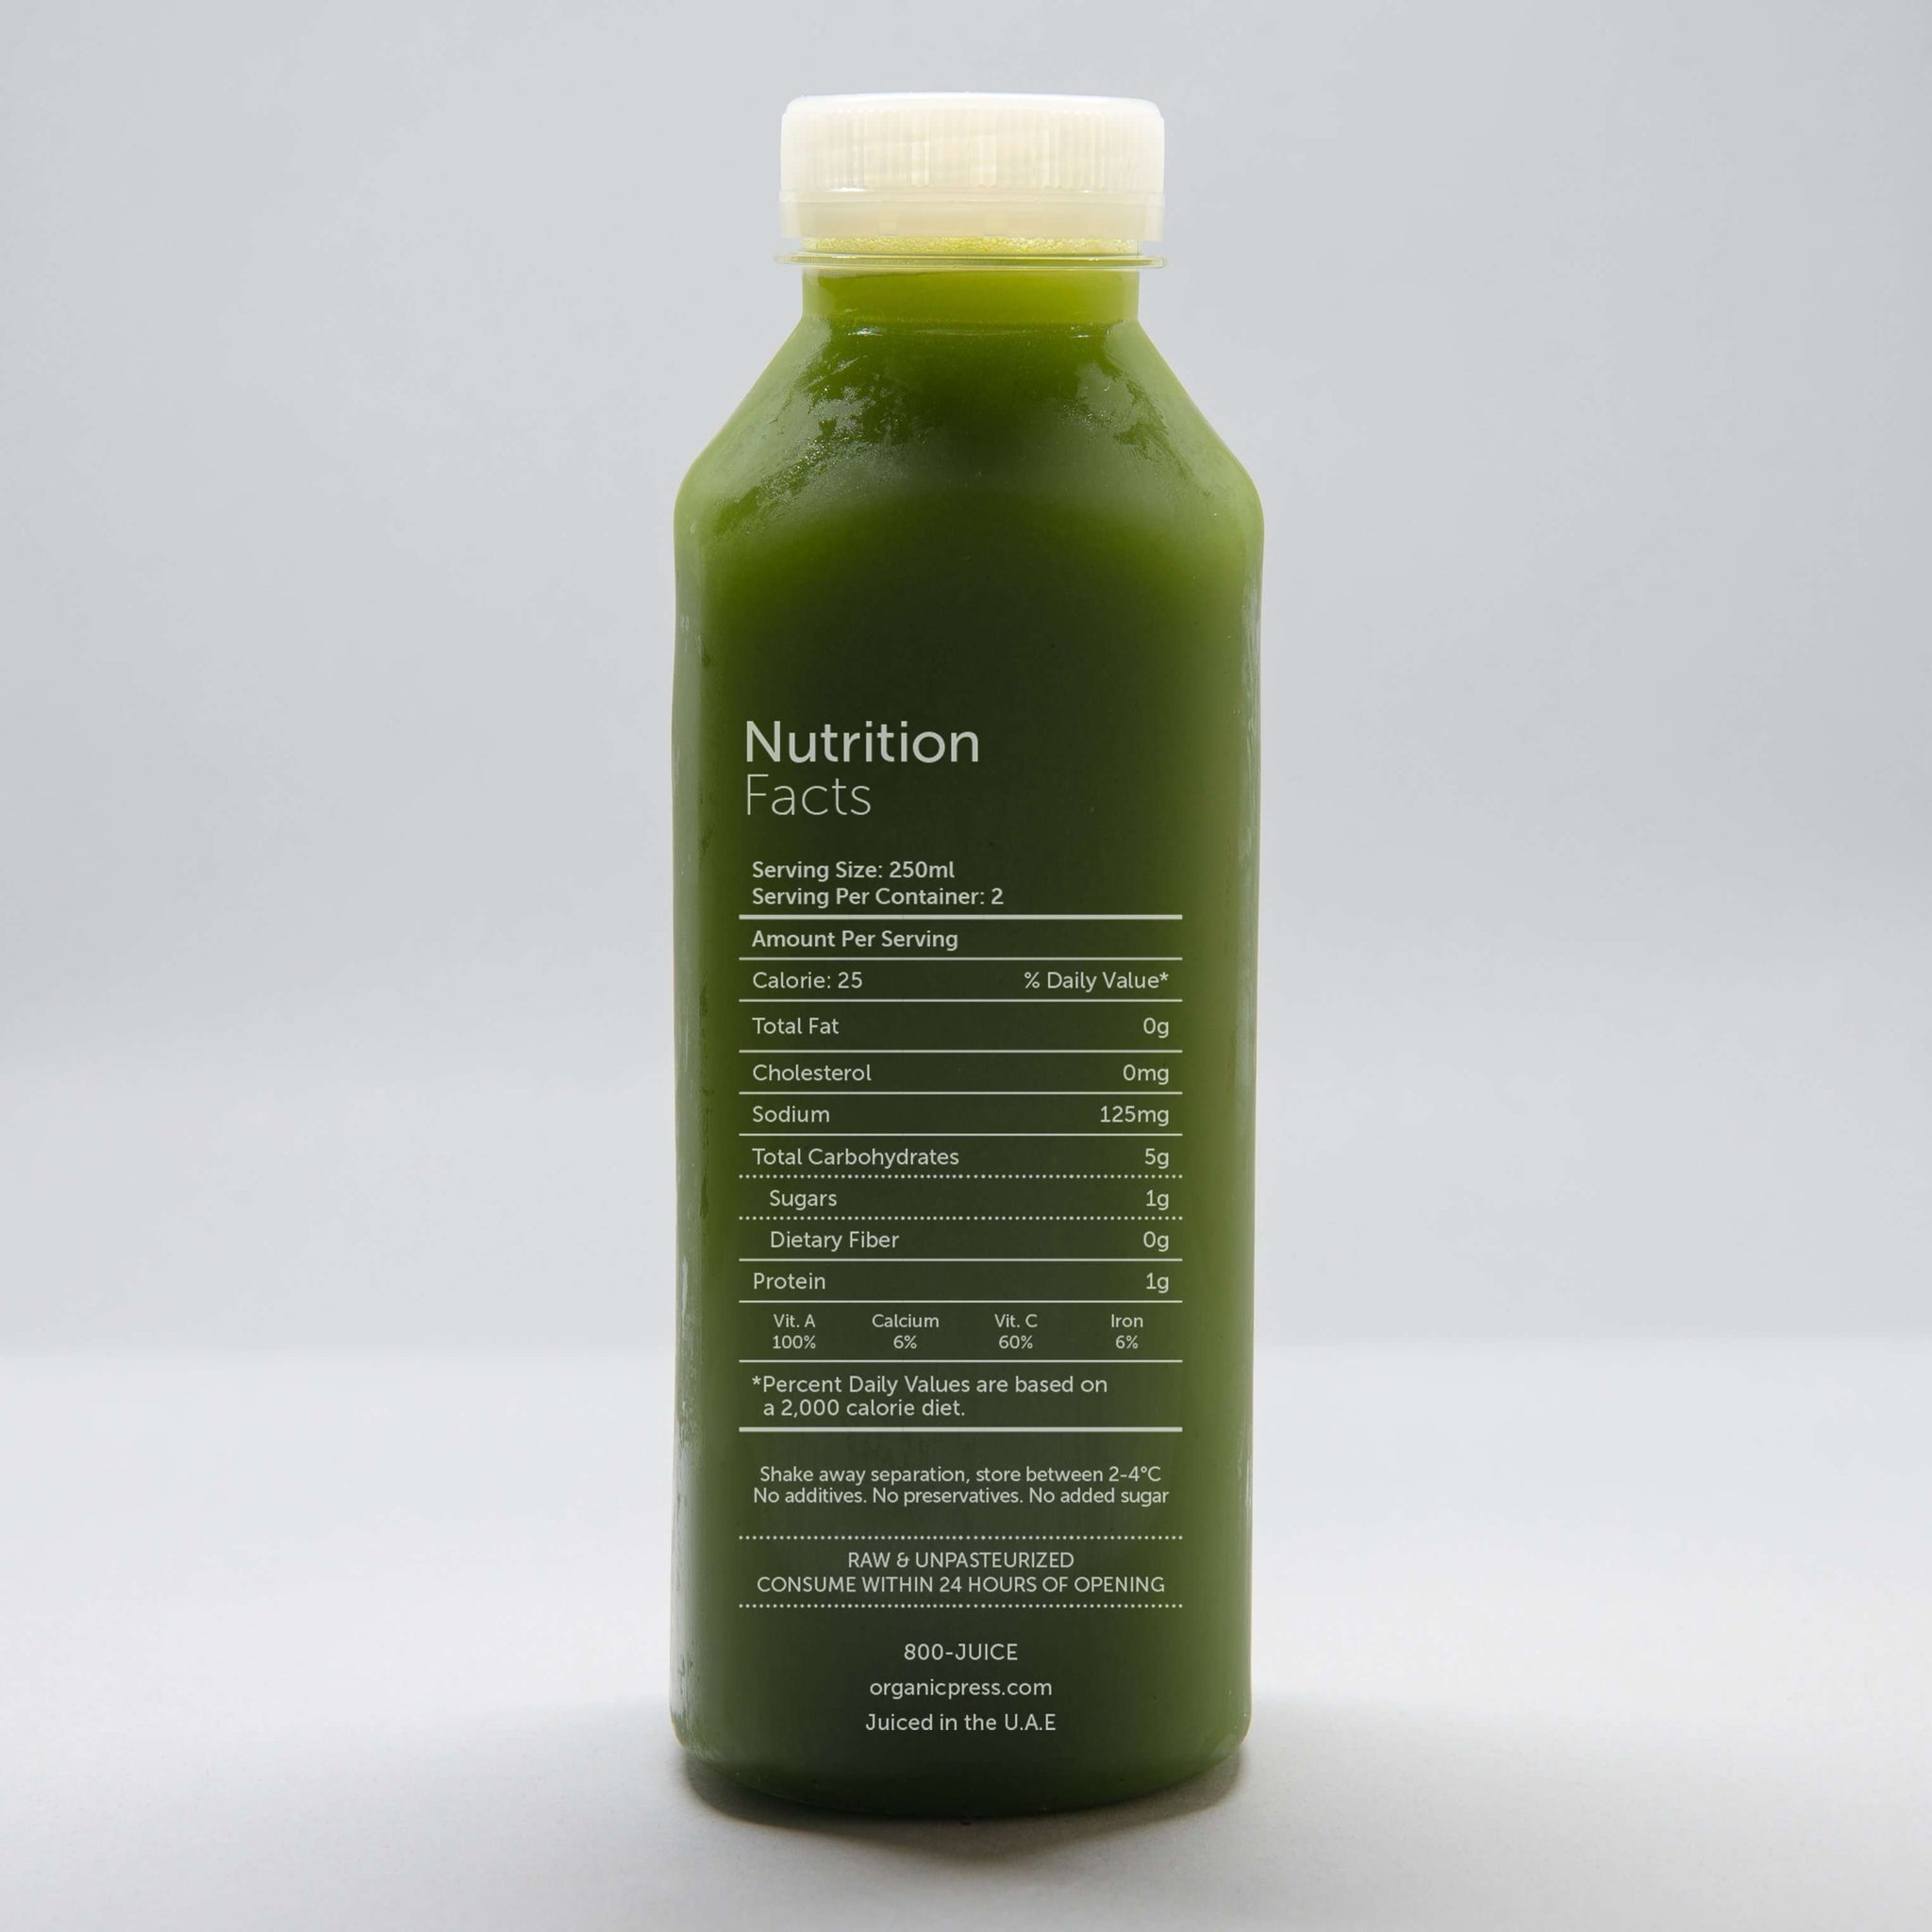 Probiotic Greens: Probiotics, Kale, Lettuce, Spinach, Parsley, Celery, Cucumber, Lemon, Ginger, Spirullina (500ml)